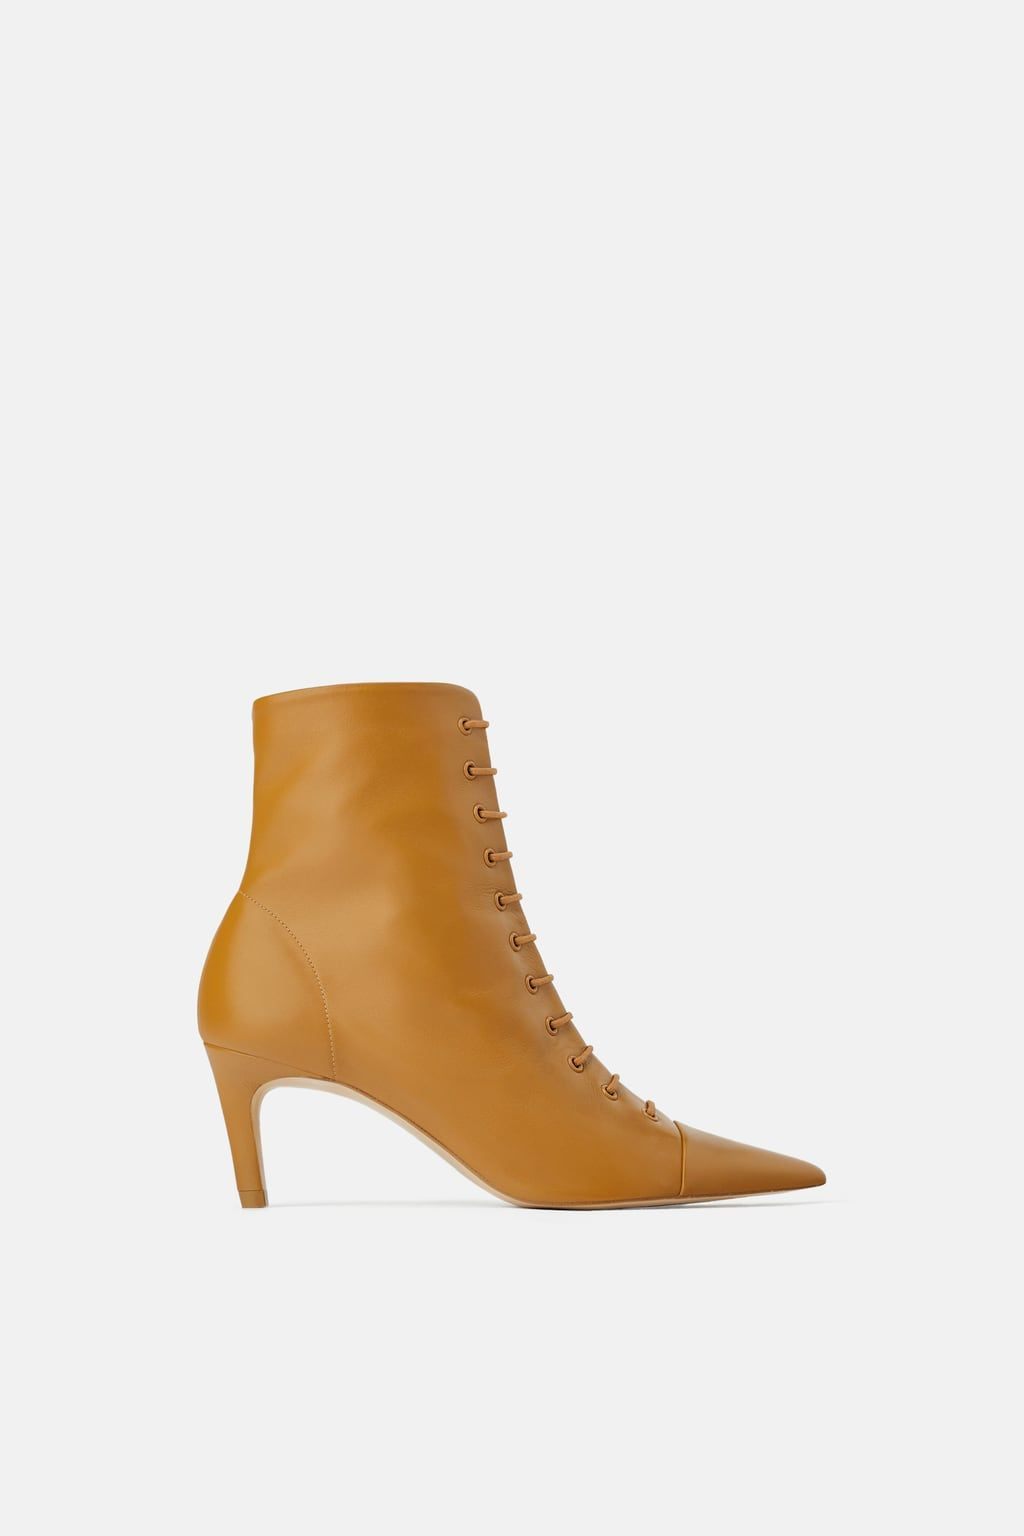 Leather Lace Up Mid Heel Ankle Boots Shoes Woman Shoes Bags Zara Cyprus Kitten Heel Boots Mid Heel Ankle Boots Heels